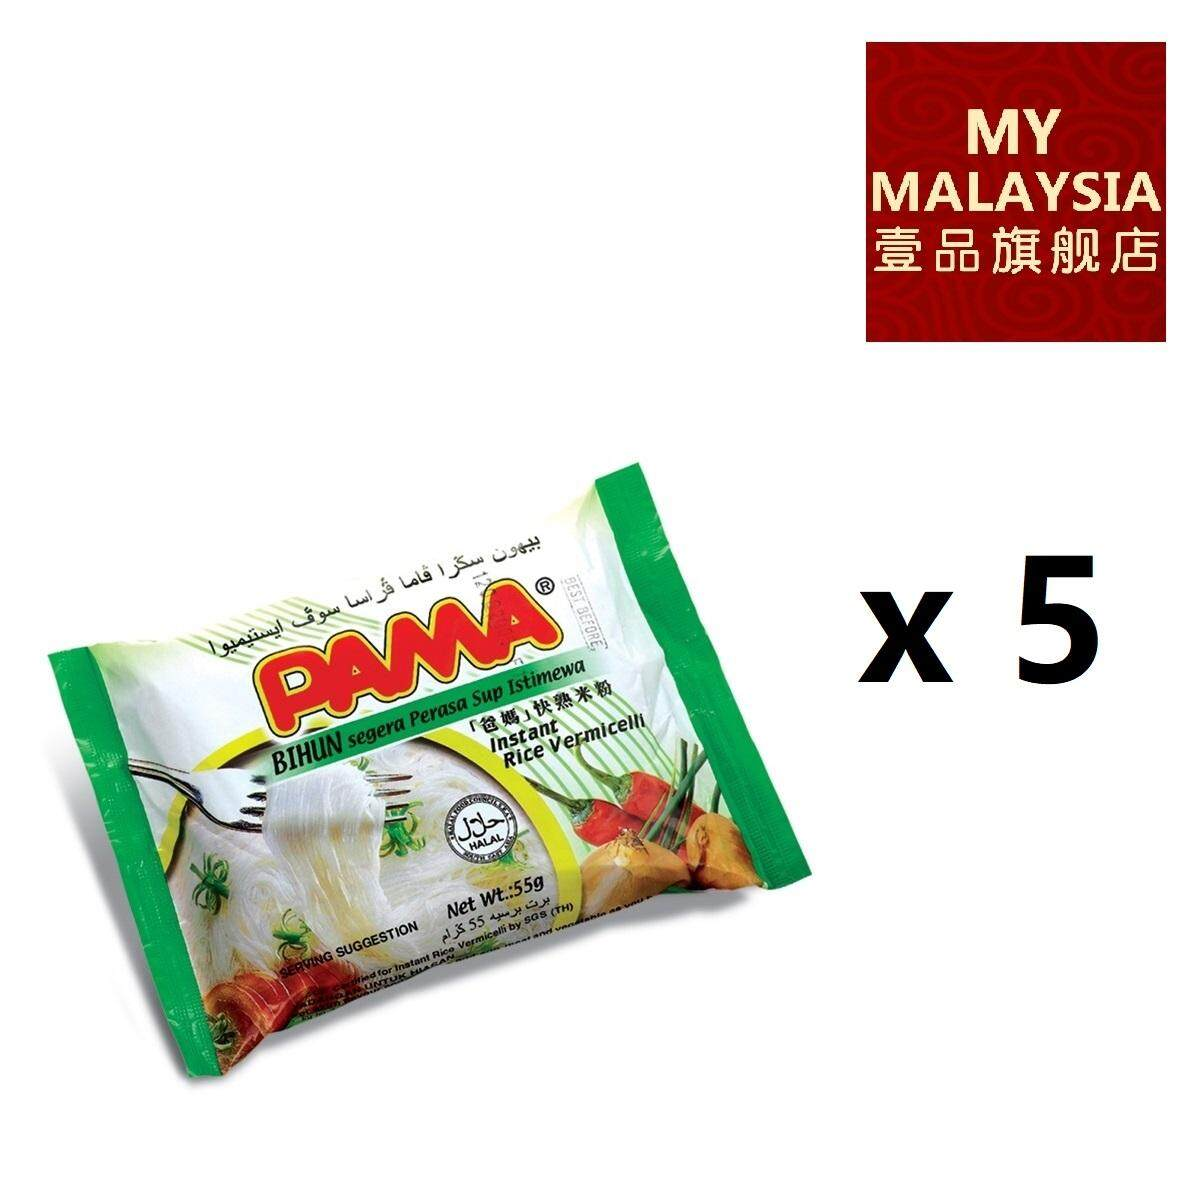 Pama Instant Cup Noodles COMBO - Assorted Flavors (24 units)